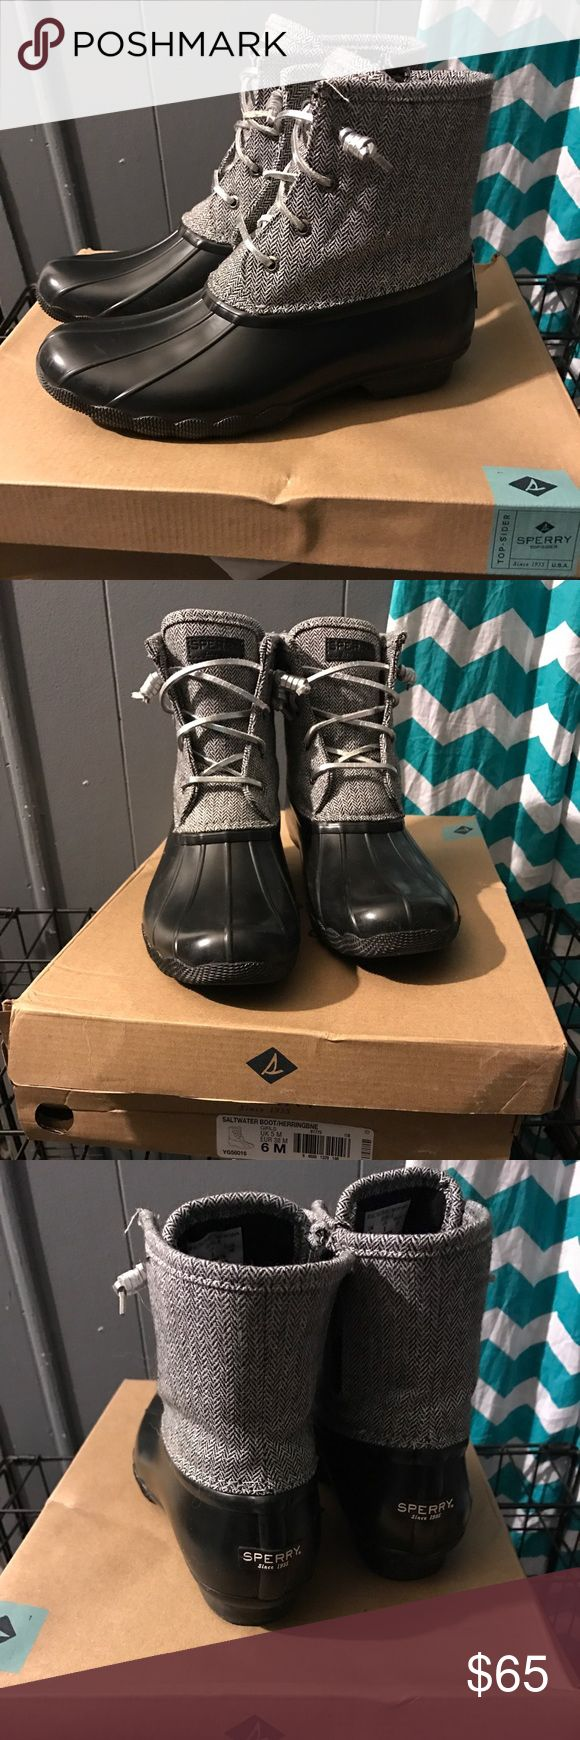 Sperry duck boots Sperry saltwater duck boots. Been worn twice. Has a little fray on left boot top left corner not noticeable at all you can see in 1st pic. 6 in kids fits like 8 in women's. black and white herringbone with silver laces. Comes with box super comfortable. Sperry Shoes Winter & Rain Boots